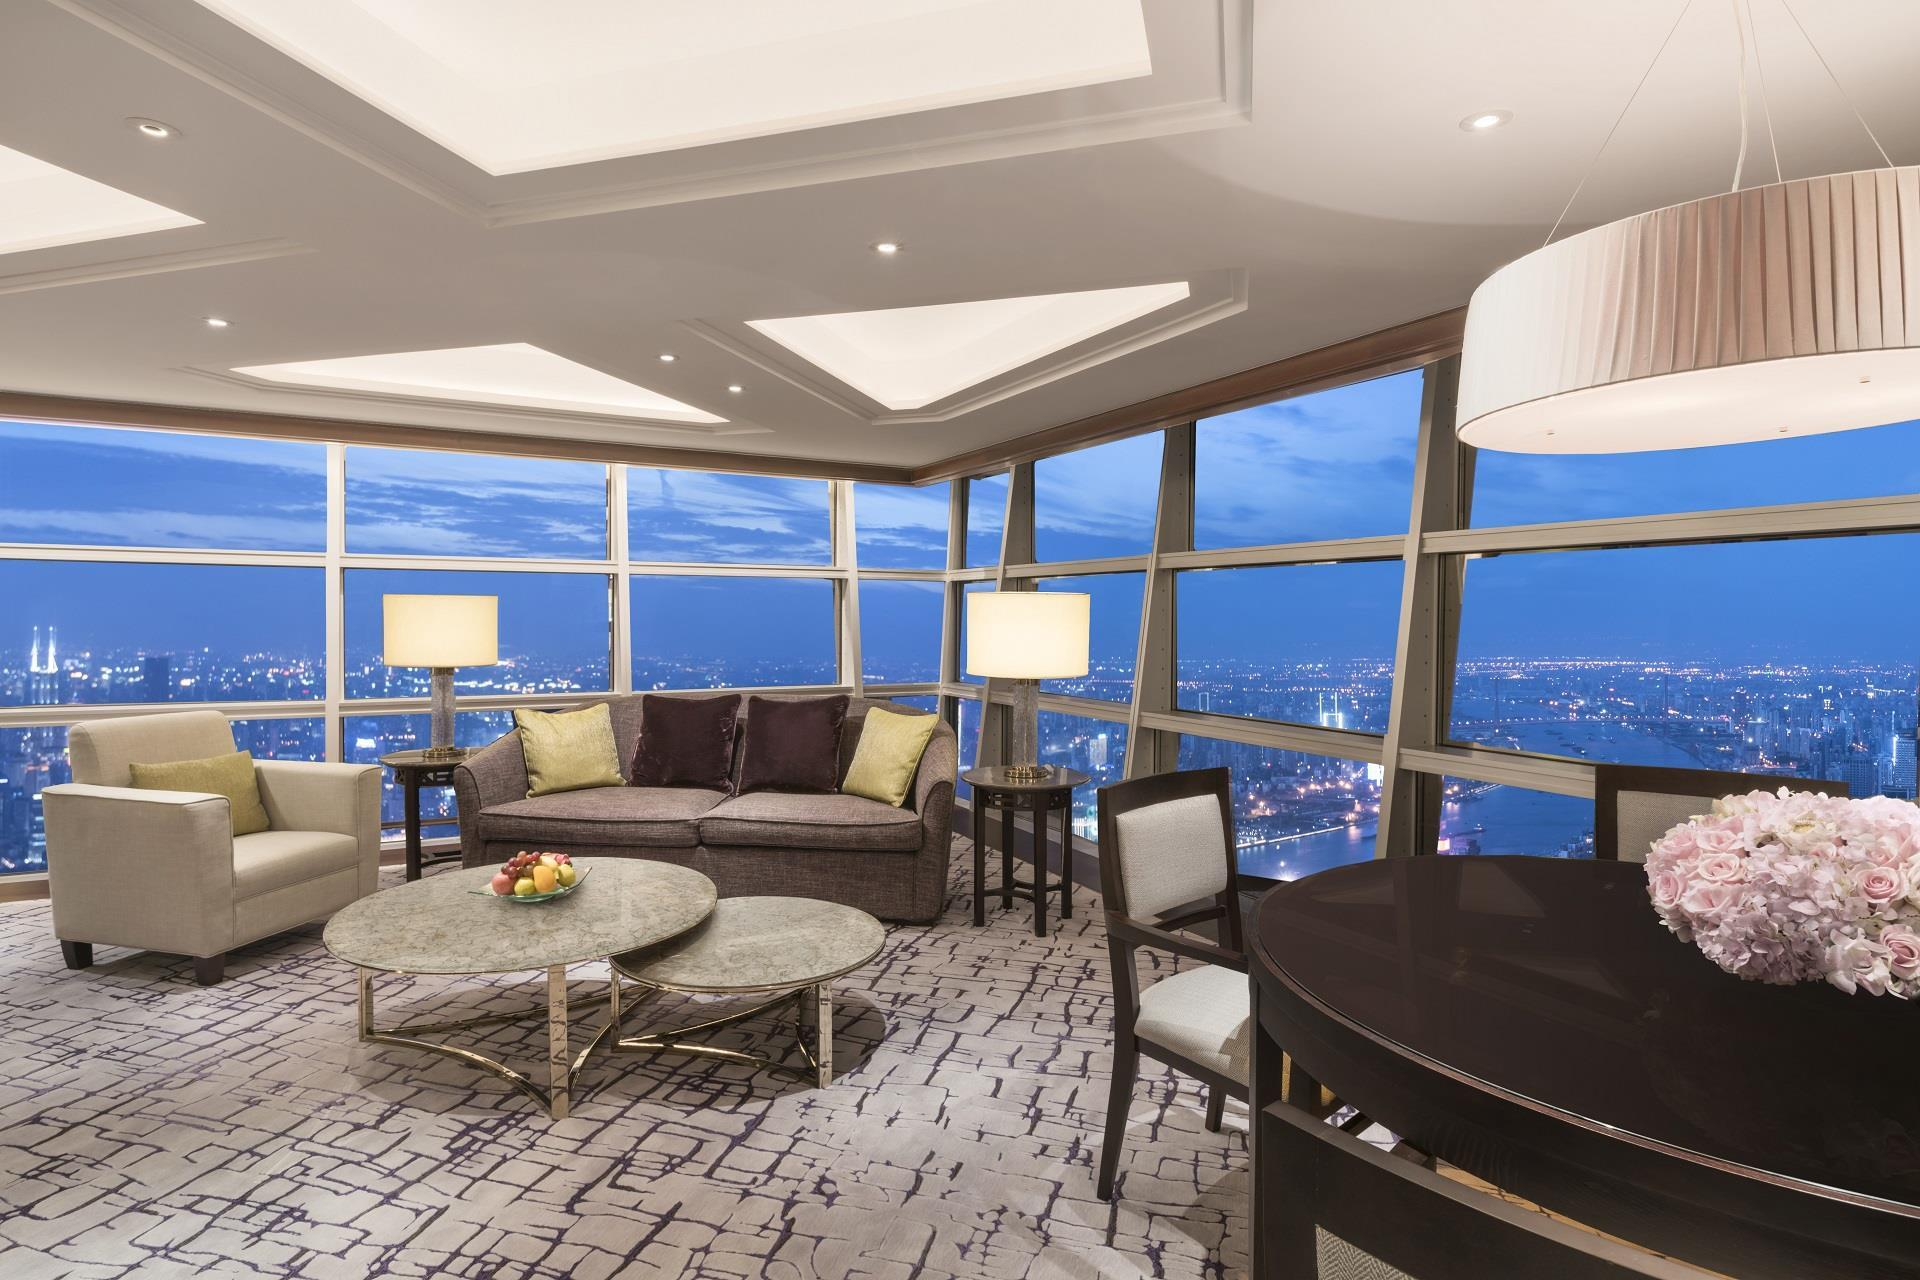 themed rooms disney inspired spaces.htm meetings and events at grand hyatt shanghai  shanghai  cn  grand hyatt shanghai